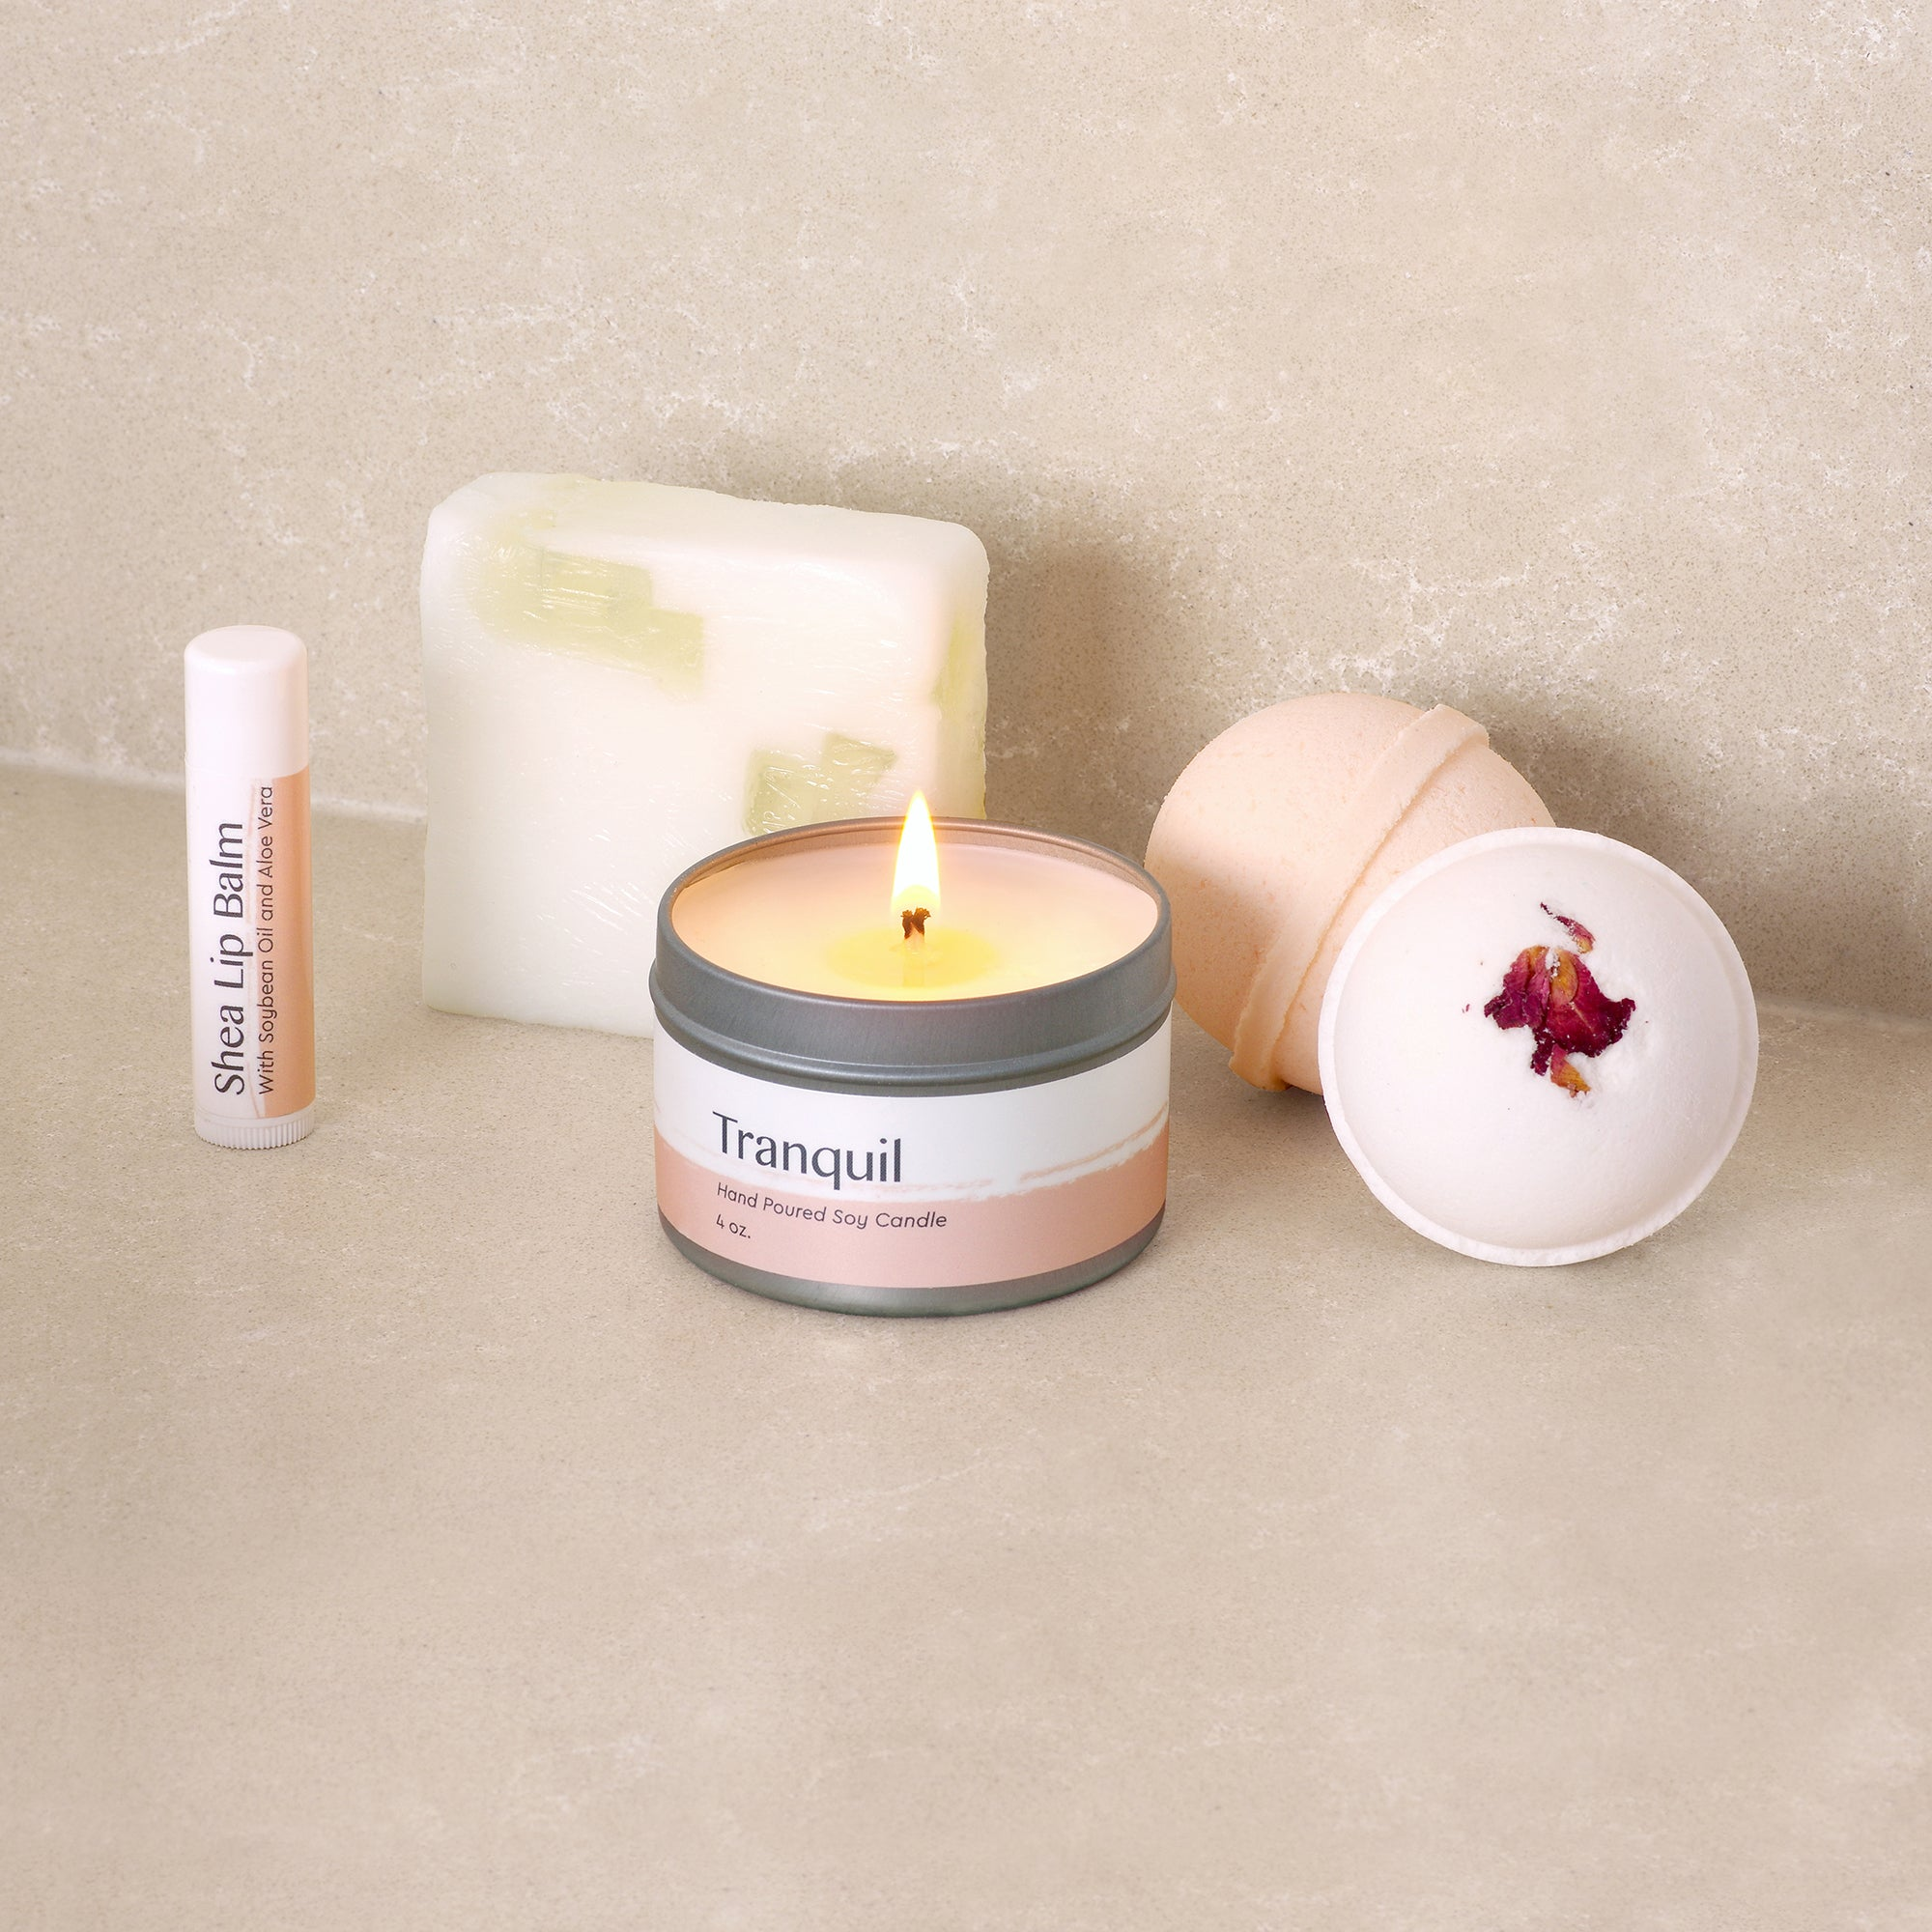 Vegan Soy Candle Essential Oil Candle Aesthetic Candle Minimalist ...